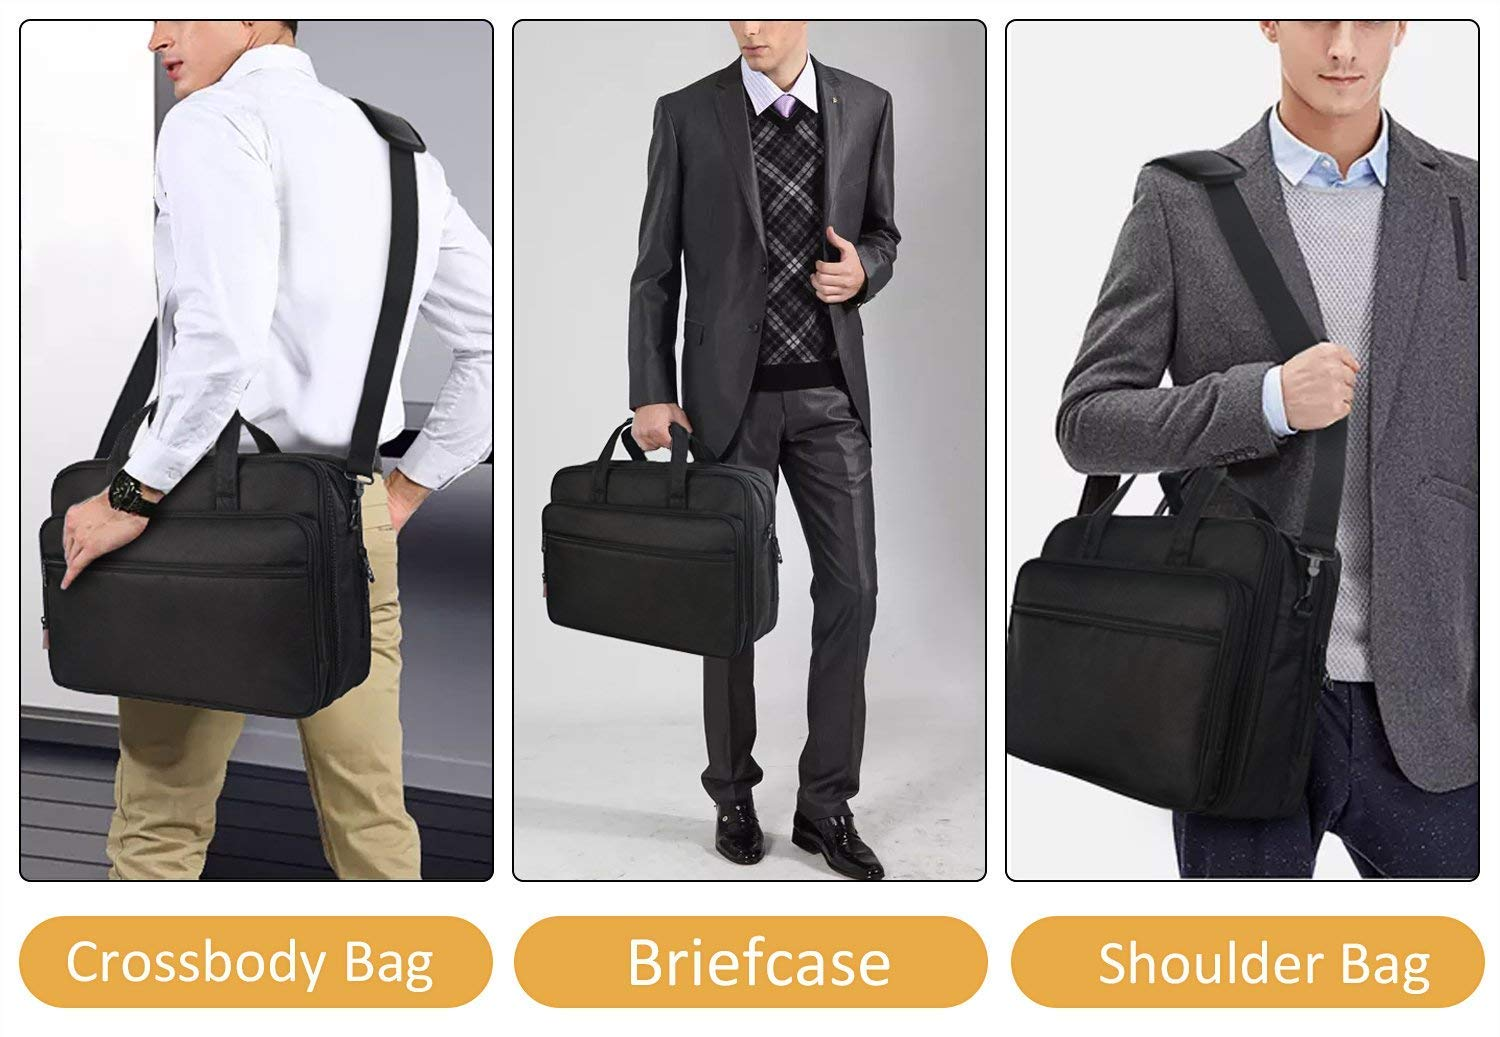 17 inch Laptop Bag, Large Business Briefcase for Men Women, Travel Laptop Case Shoulder Bag, Waterproof Carrying Case Fits 15.6 17 inch Laptop, Expandable Computer Bag for Notebook, Ultrabook by Mancro (Image #9)